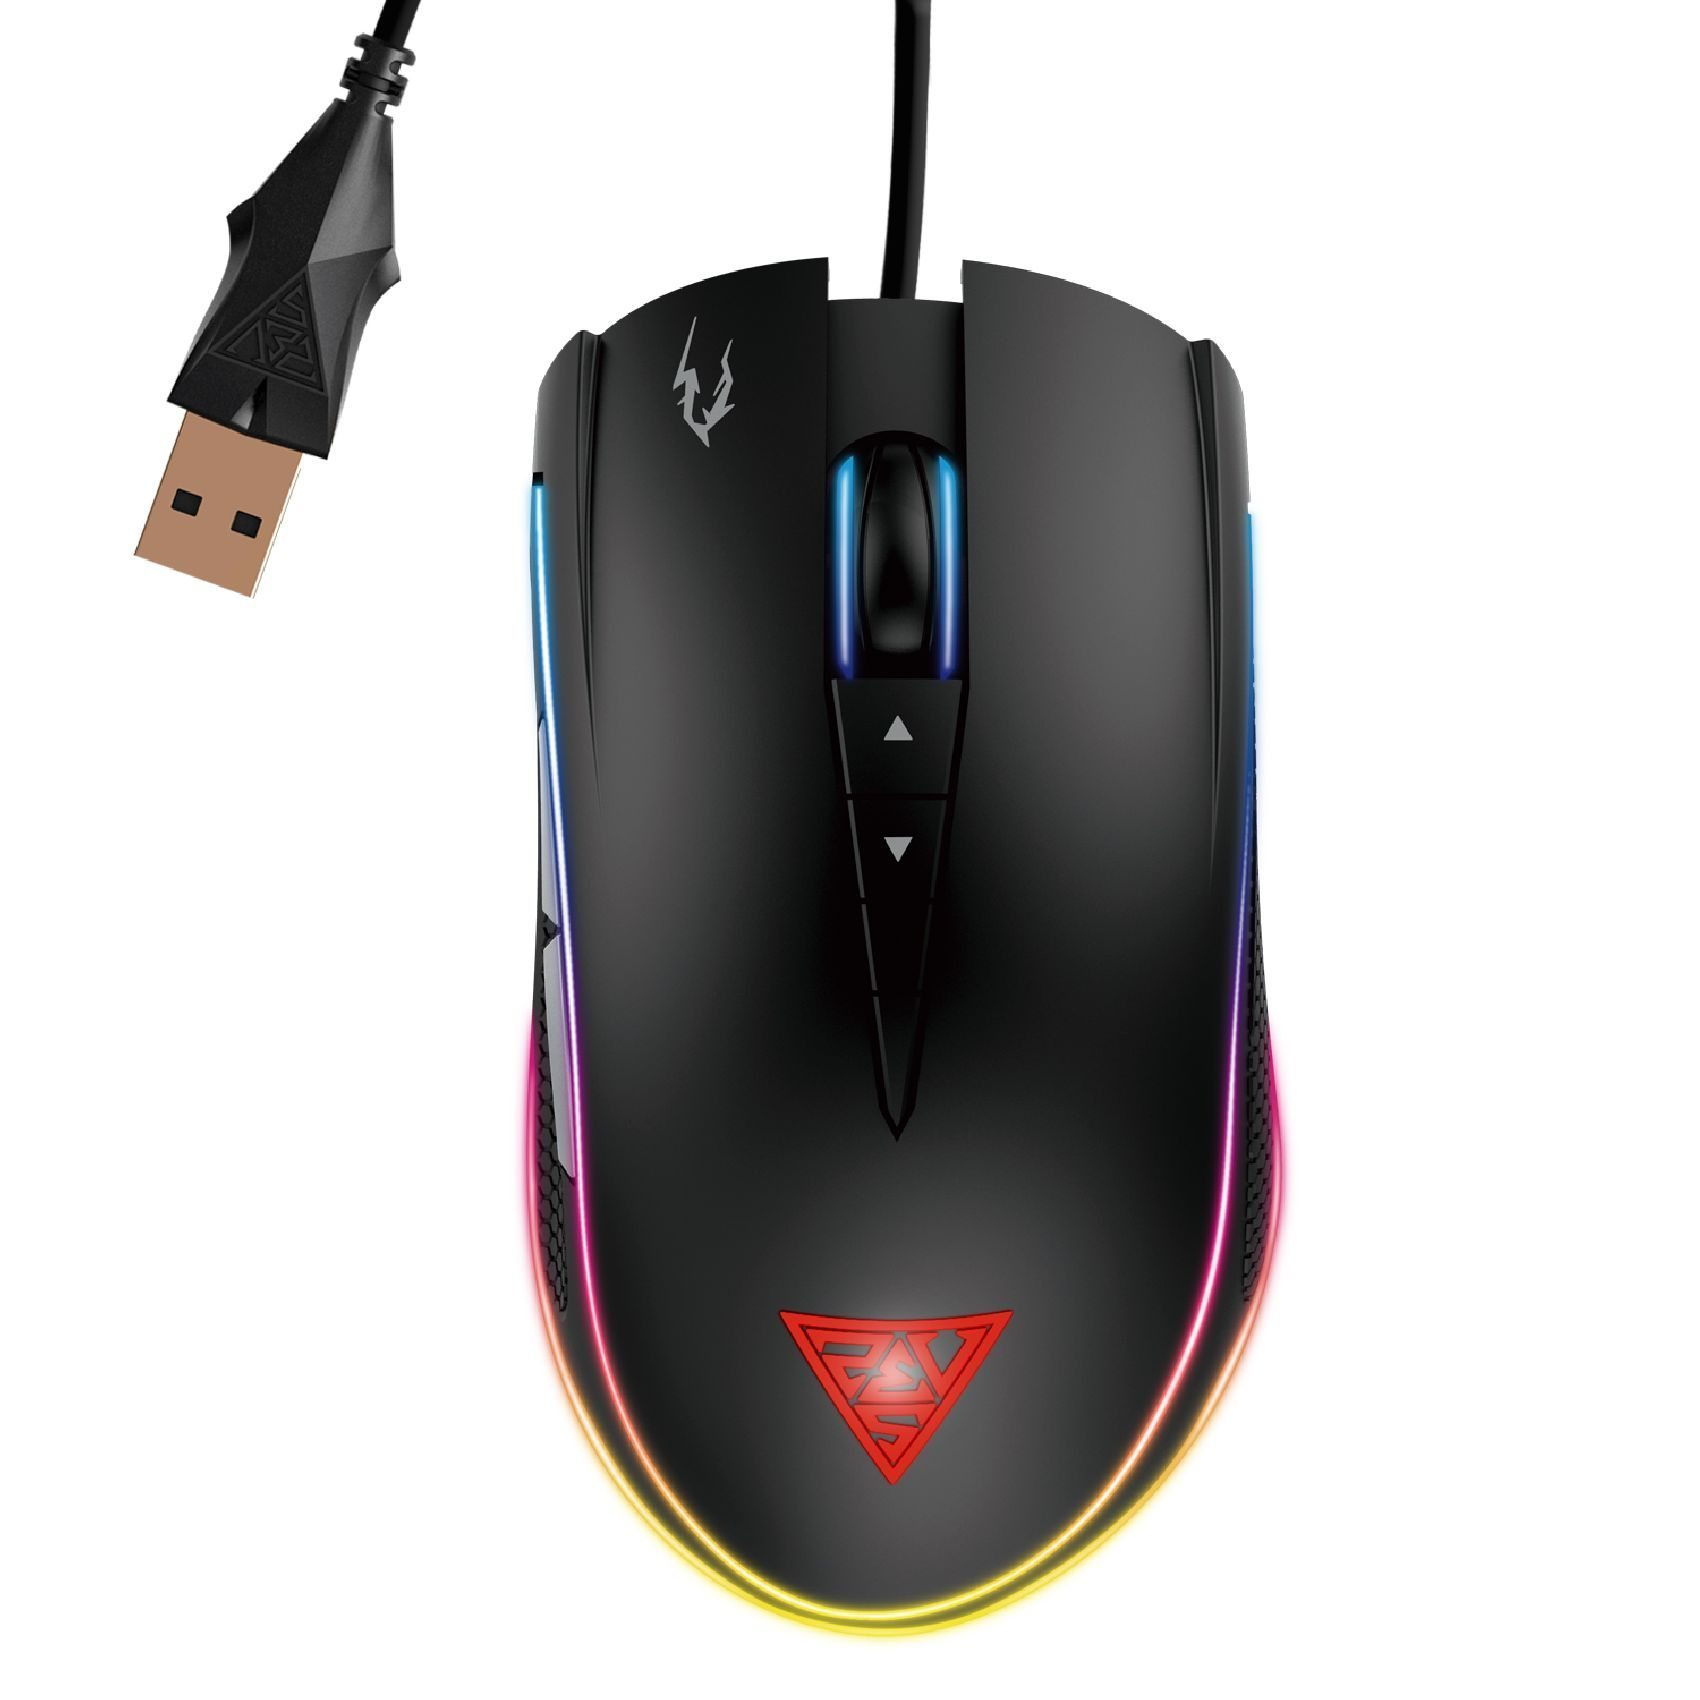 геймърска мишка Gaming Mouse - ZEUS M1 RGB - 7000dpi, RGB, Weight tunning